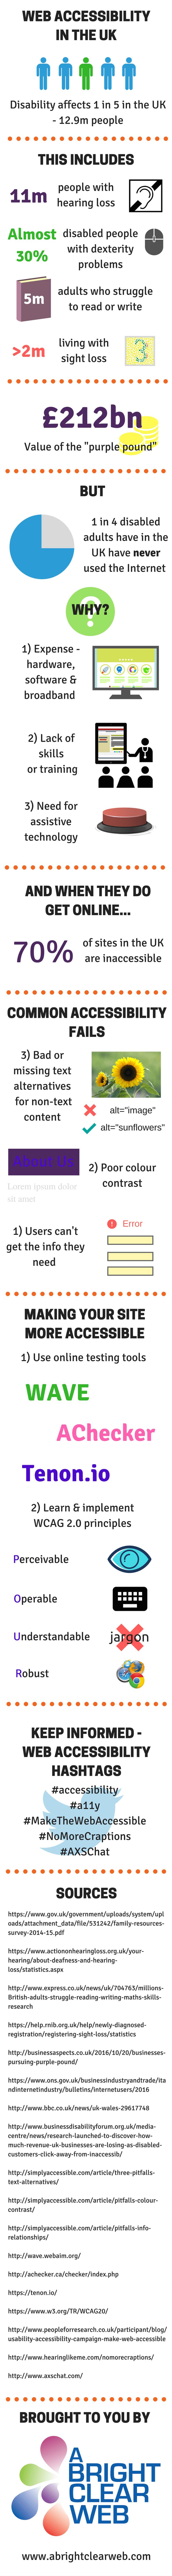 Web accessibility in the UK infographic - a series of facts about disabied people, how they access the Web & ways to make websites more accessible. See http://www.abrightclearweb.com/web-accessibility-in-the-uk/